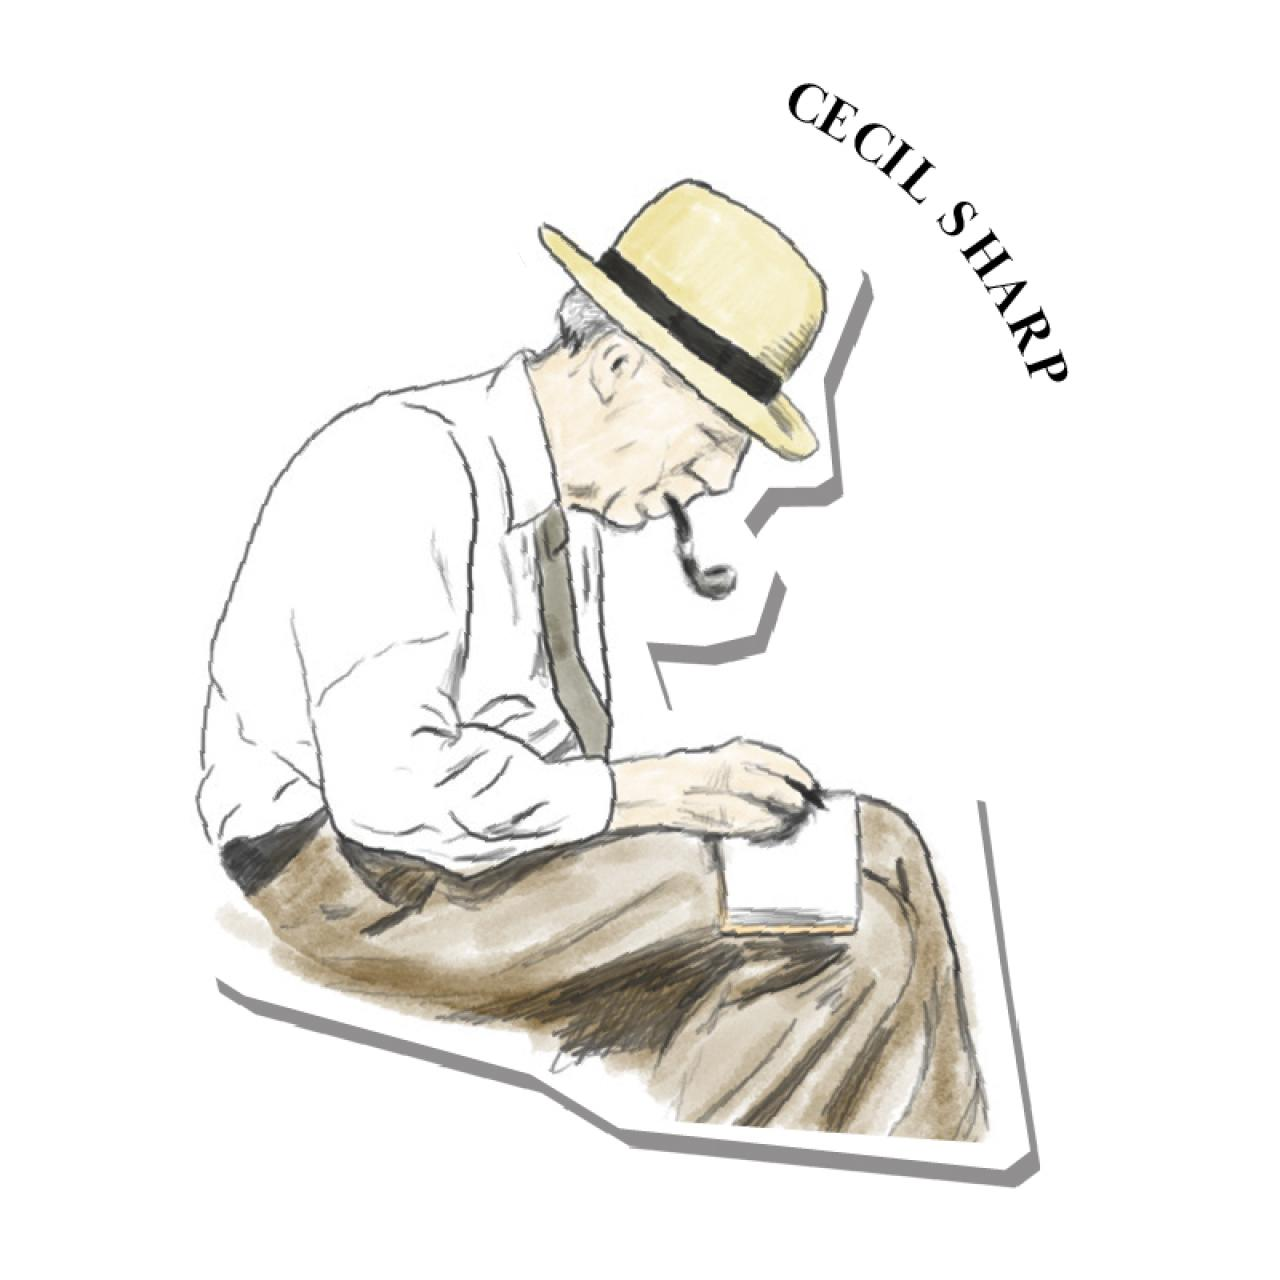 An illustration of Cecil Sharp